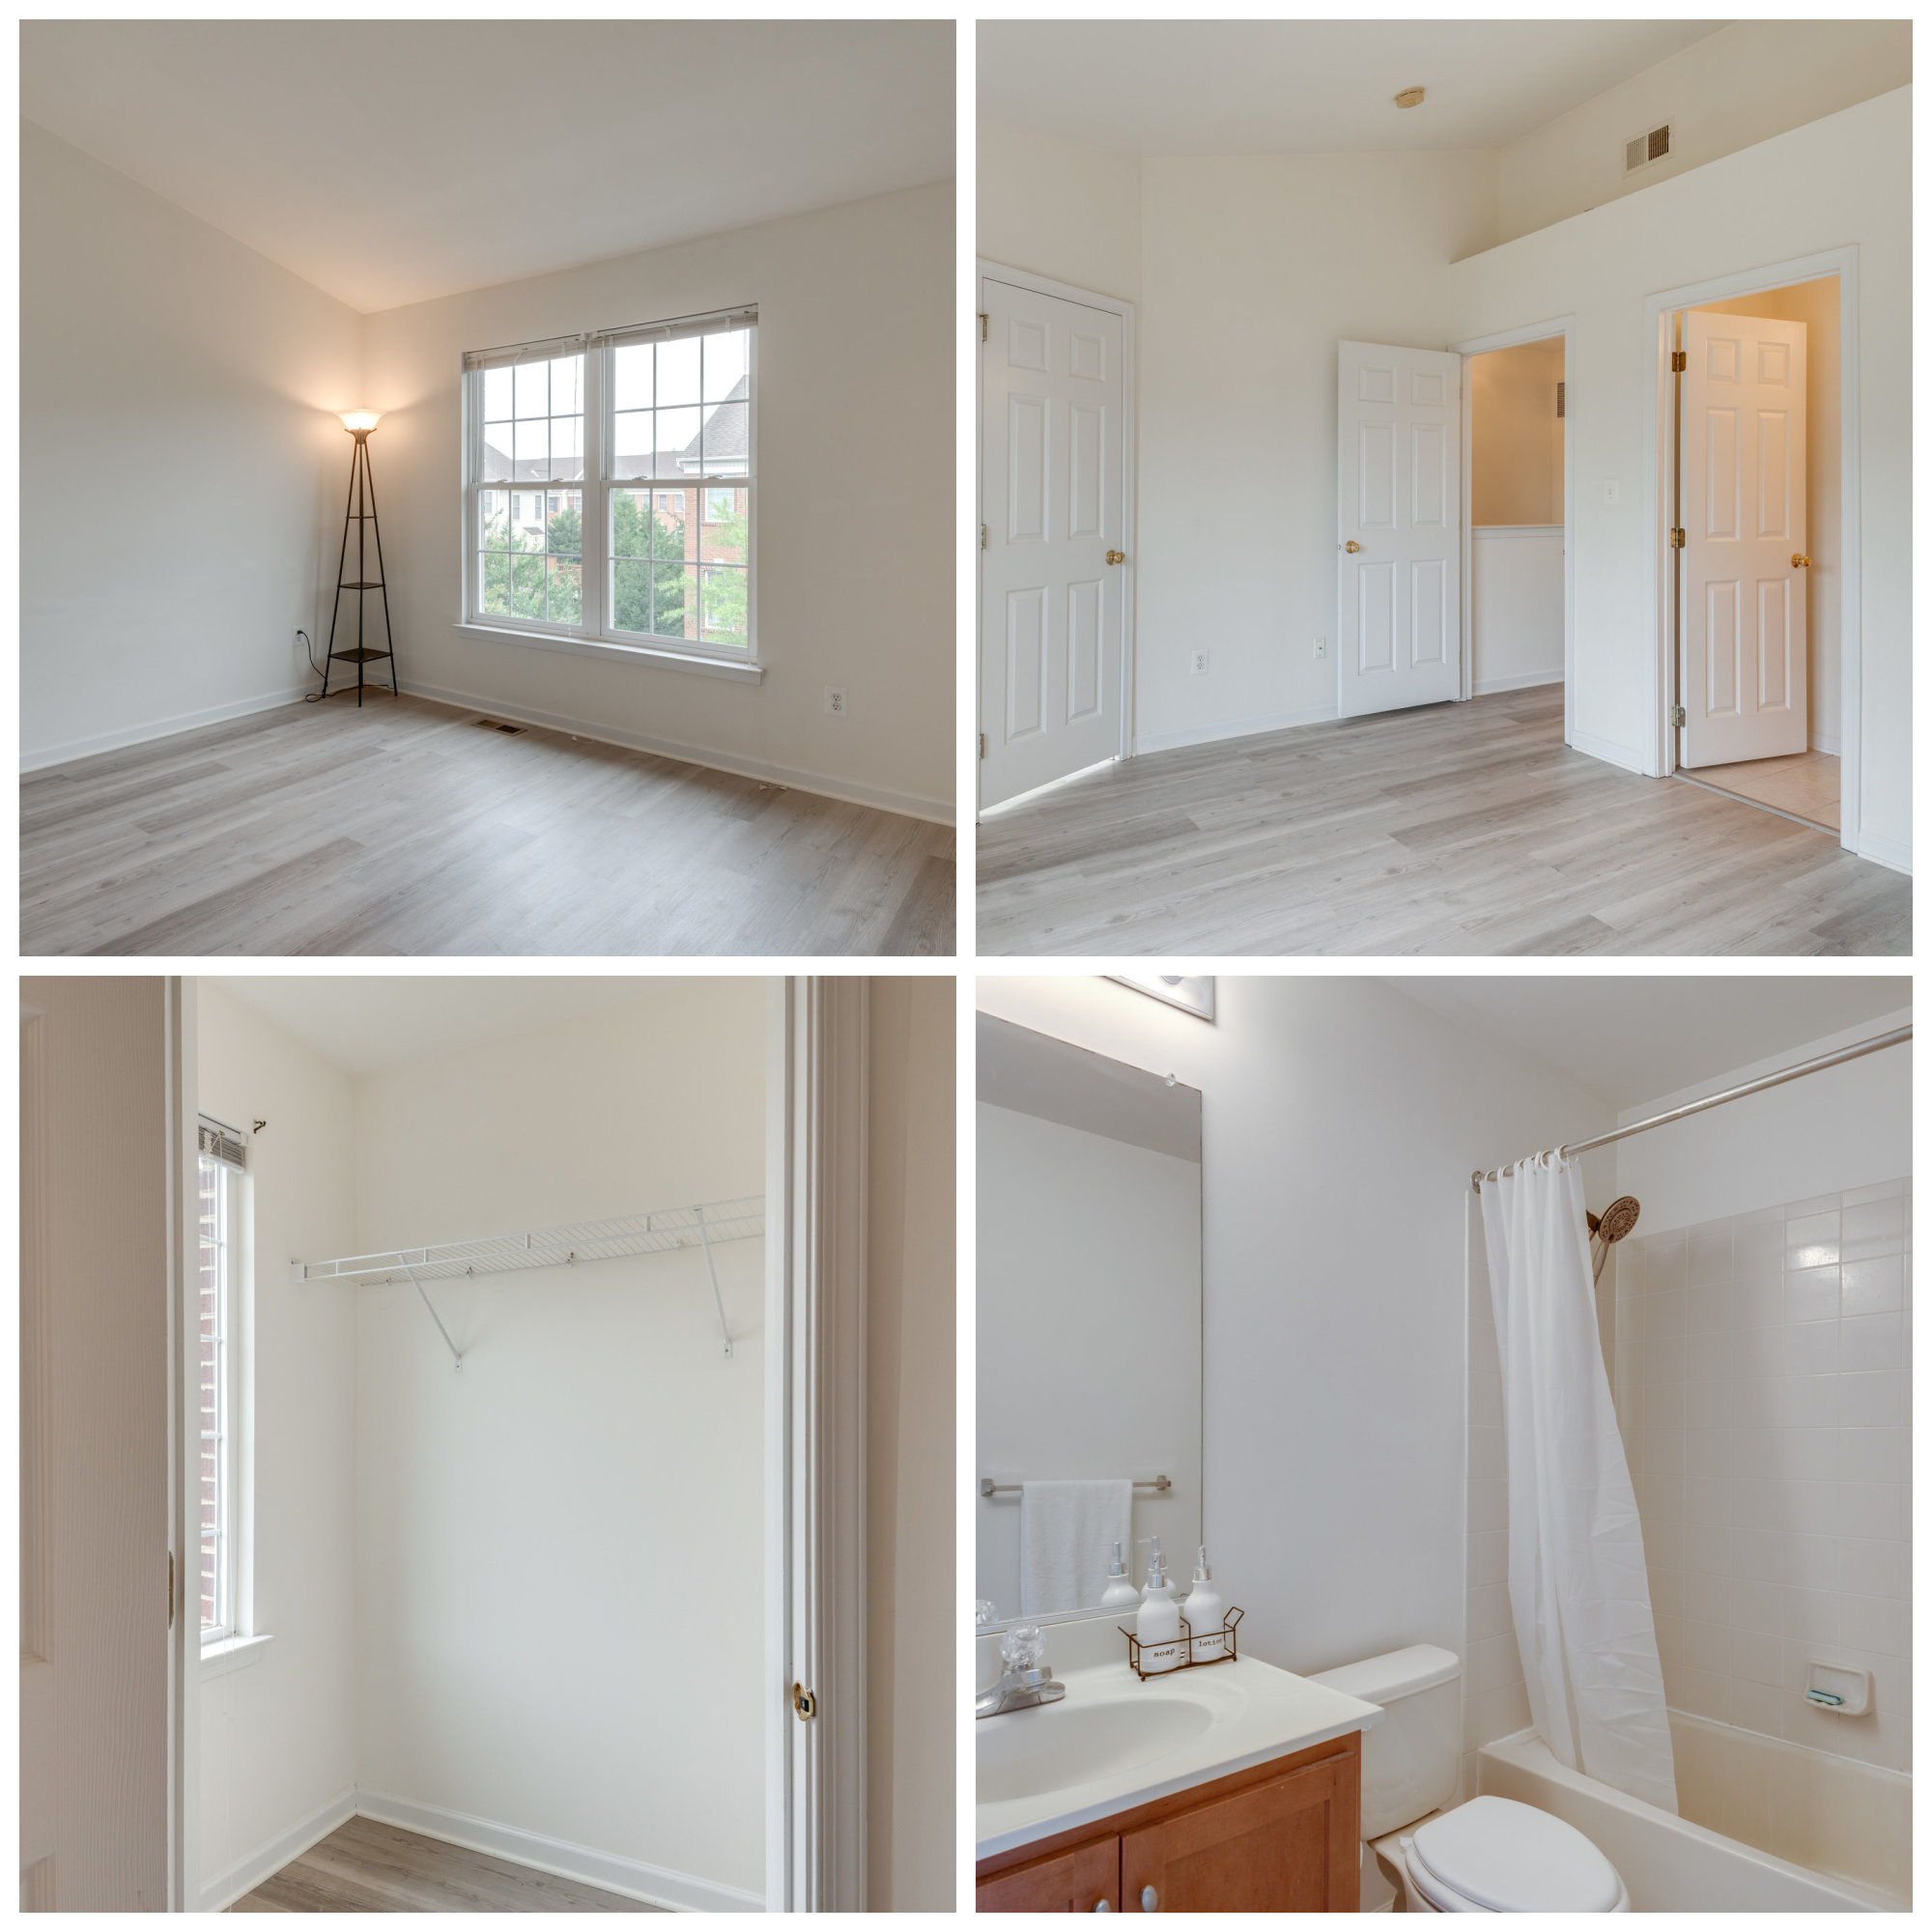 42762 Hollingsworth Ter, Chantilly- Primary Suite